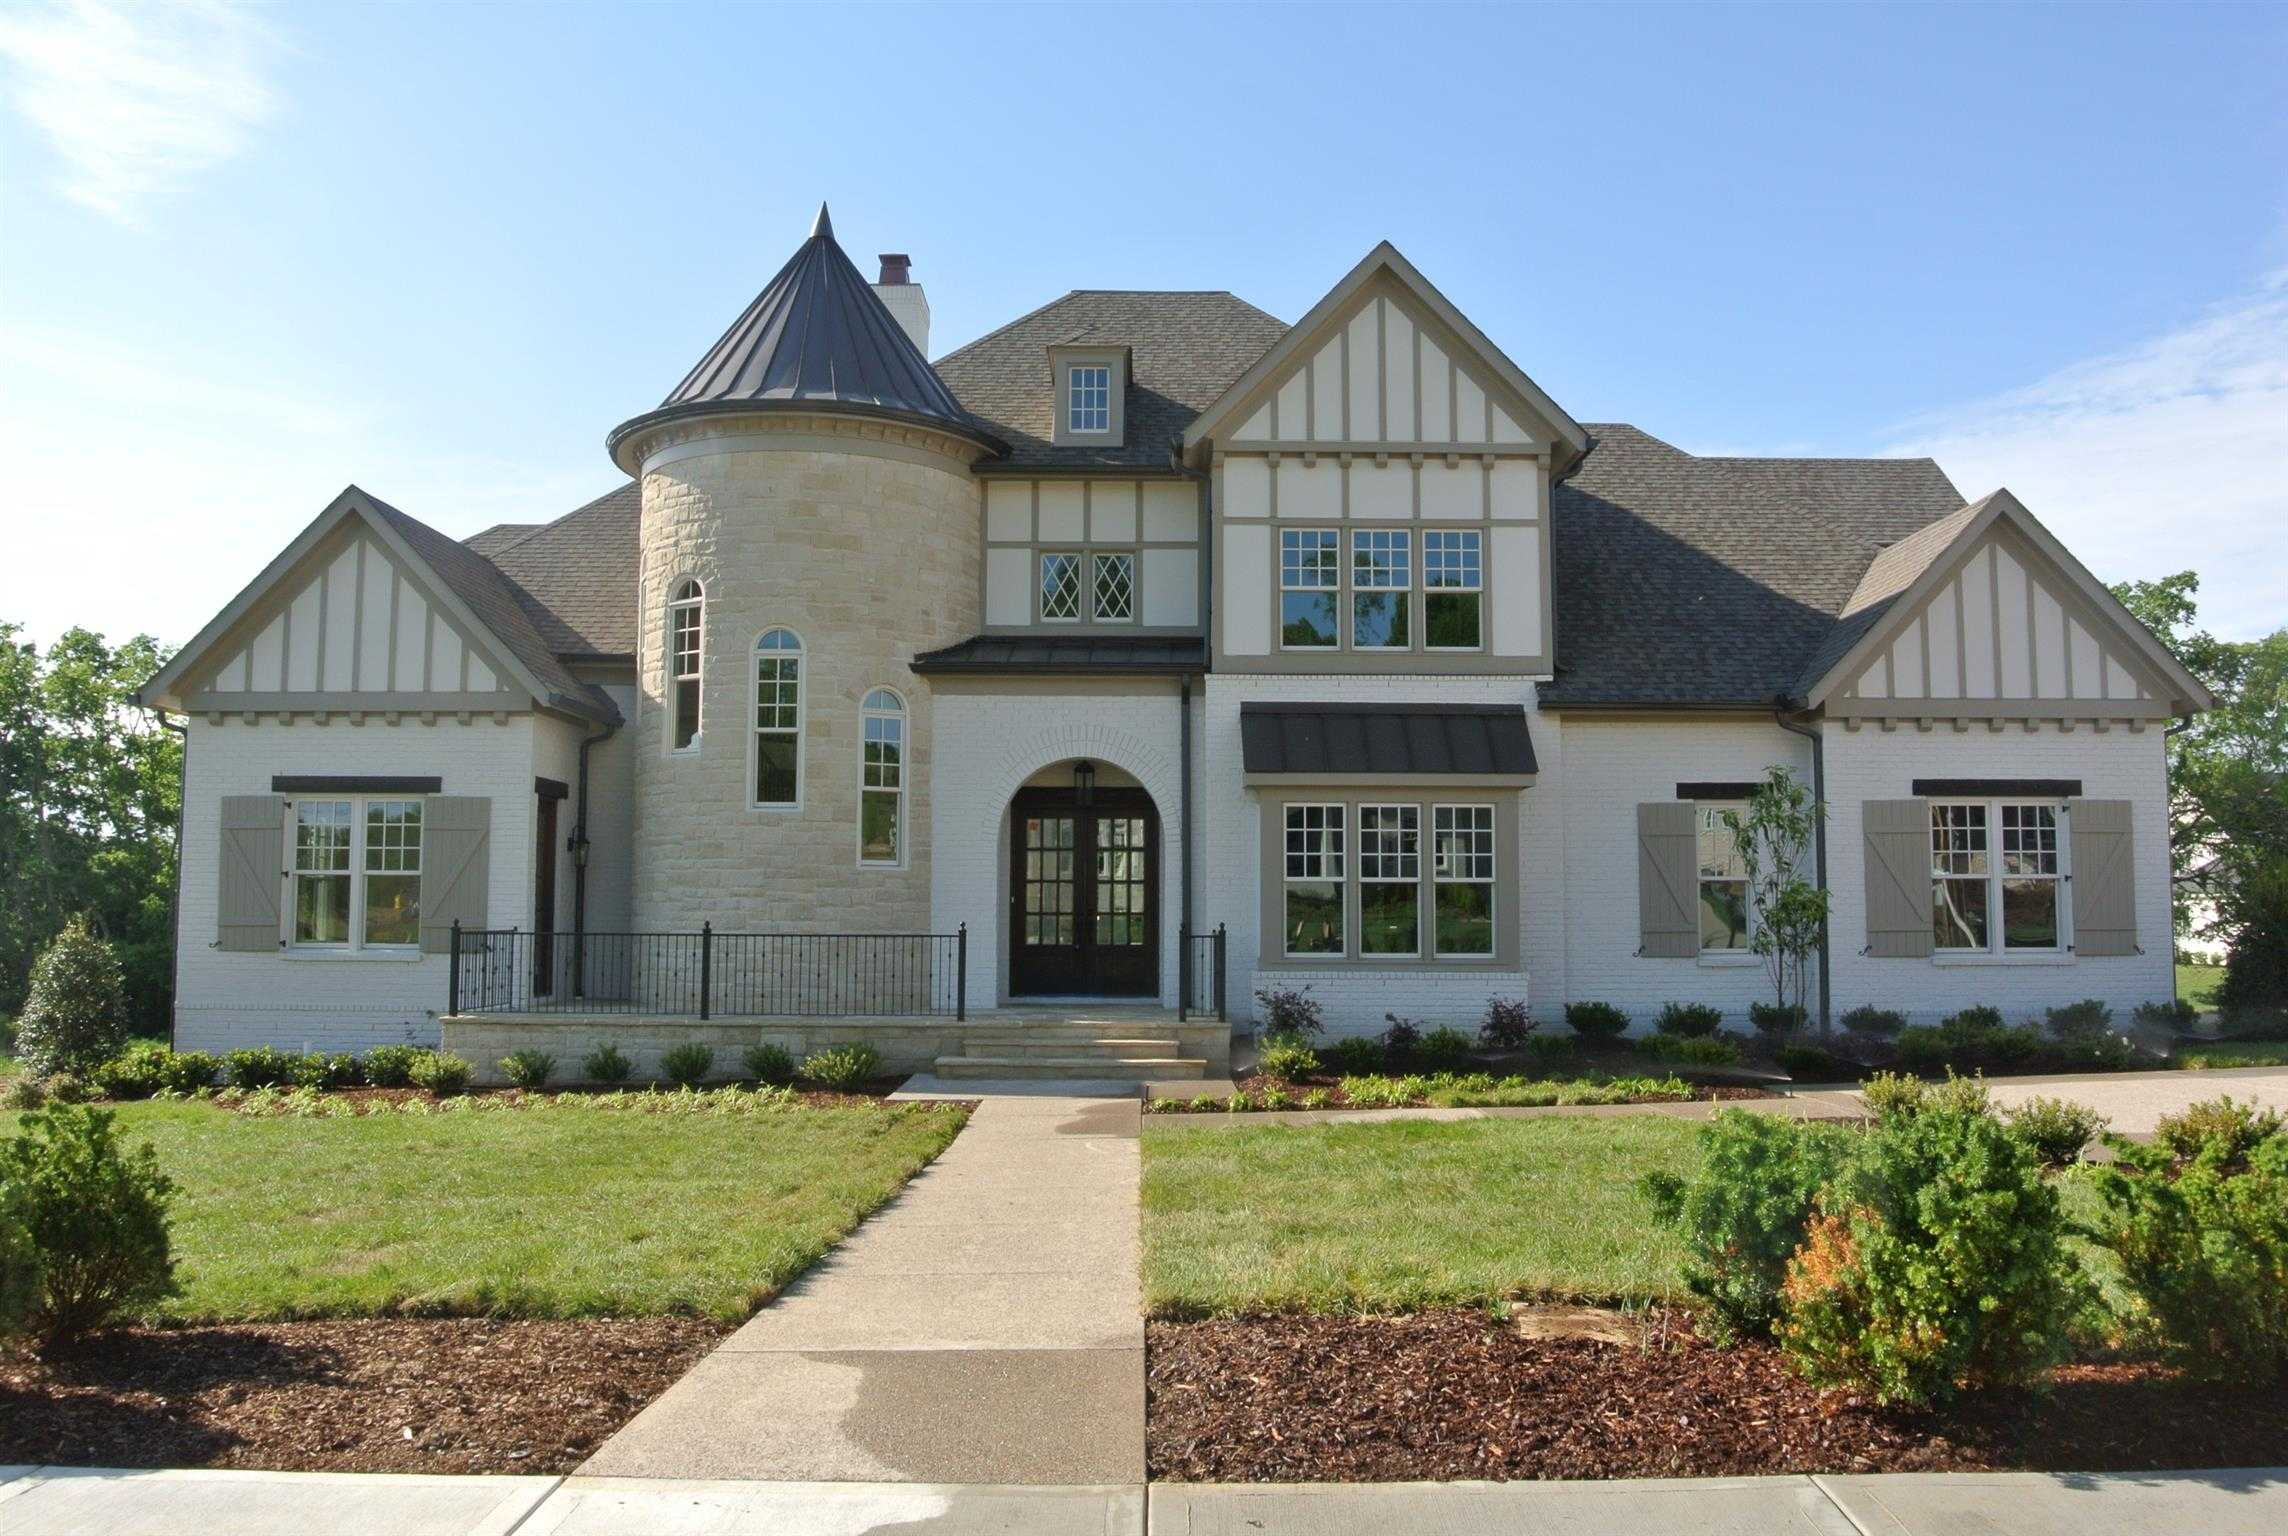 $1,689,350 - 5Br/6Ba -  for Sale in Witherspoon, Brentwood